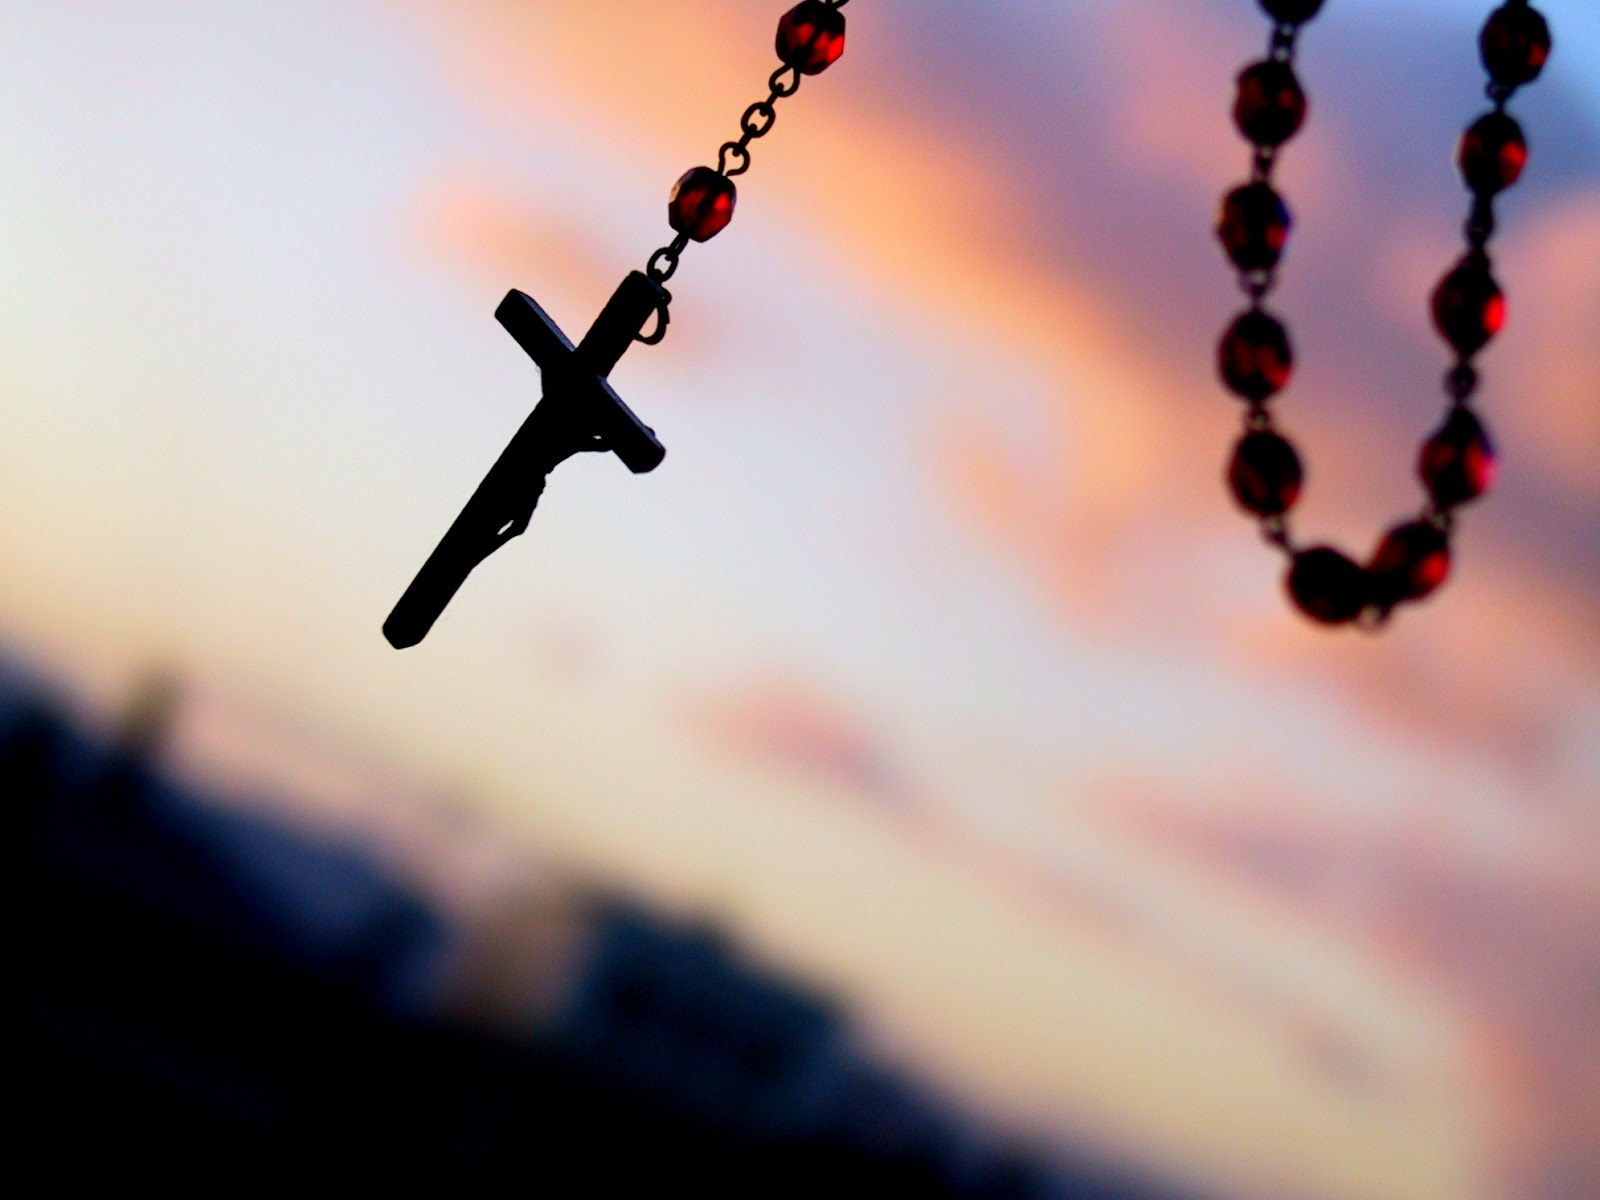 Lyme Disease can be a blessing in disguise being symbolized by this rosary in the sky on the photo